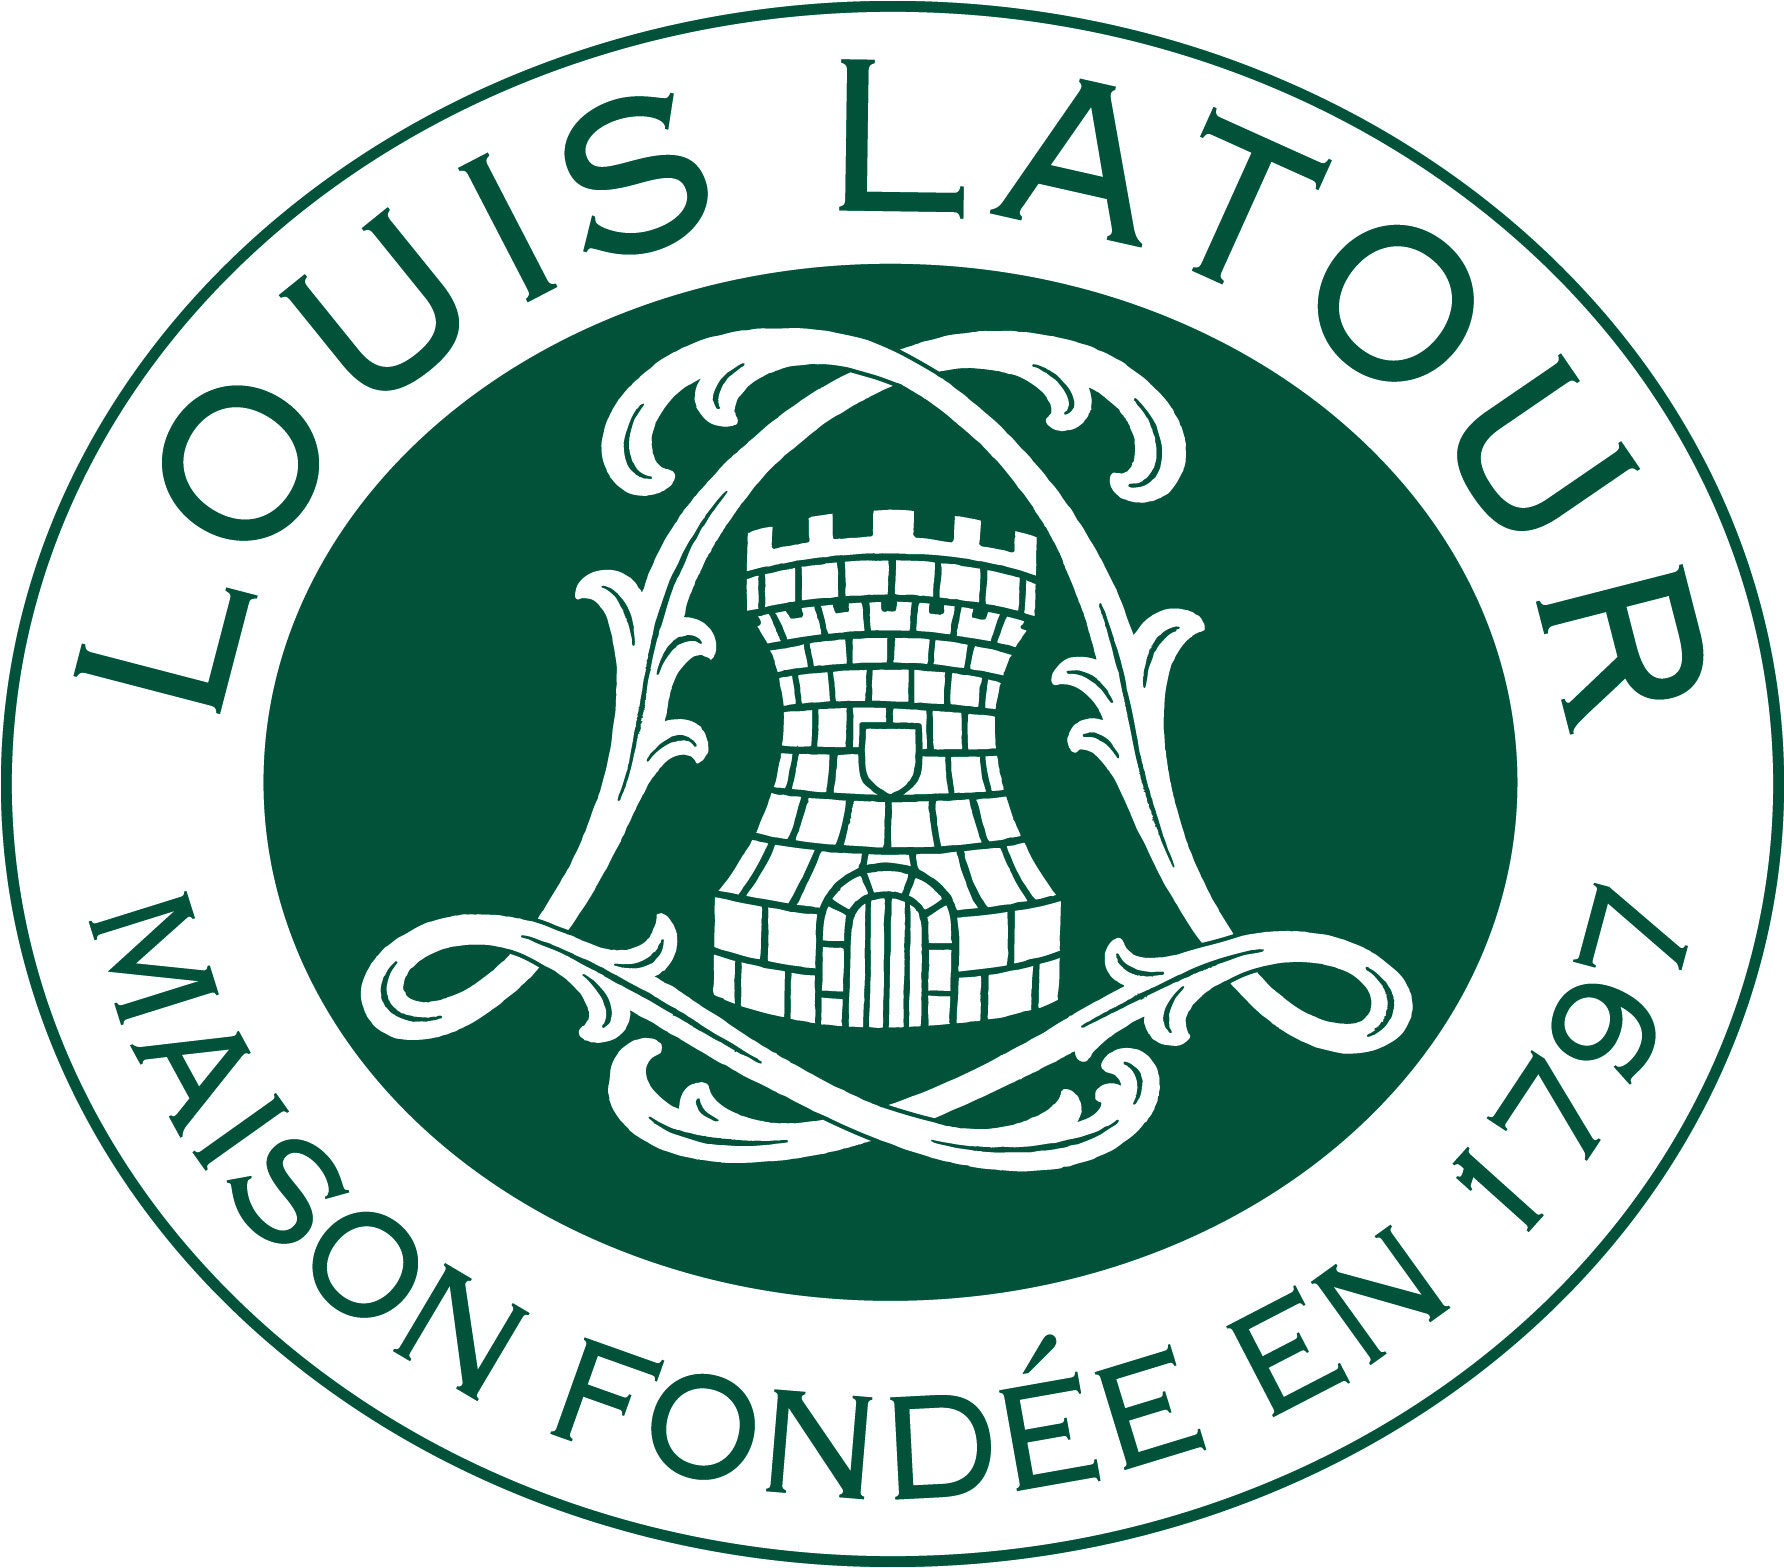 A Special 'Cadwell Park' Wine Offer for Club Members from Maison Louis Latour cover